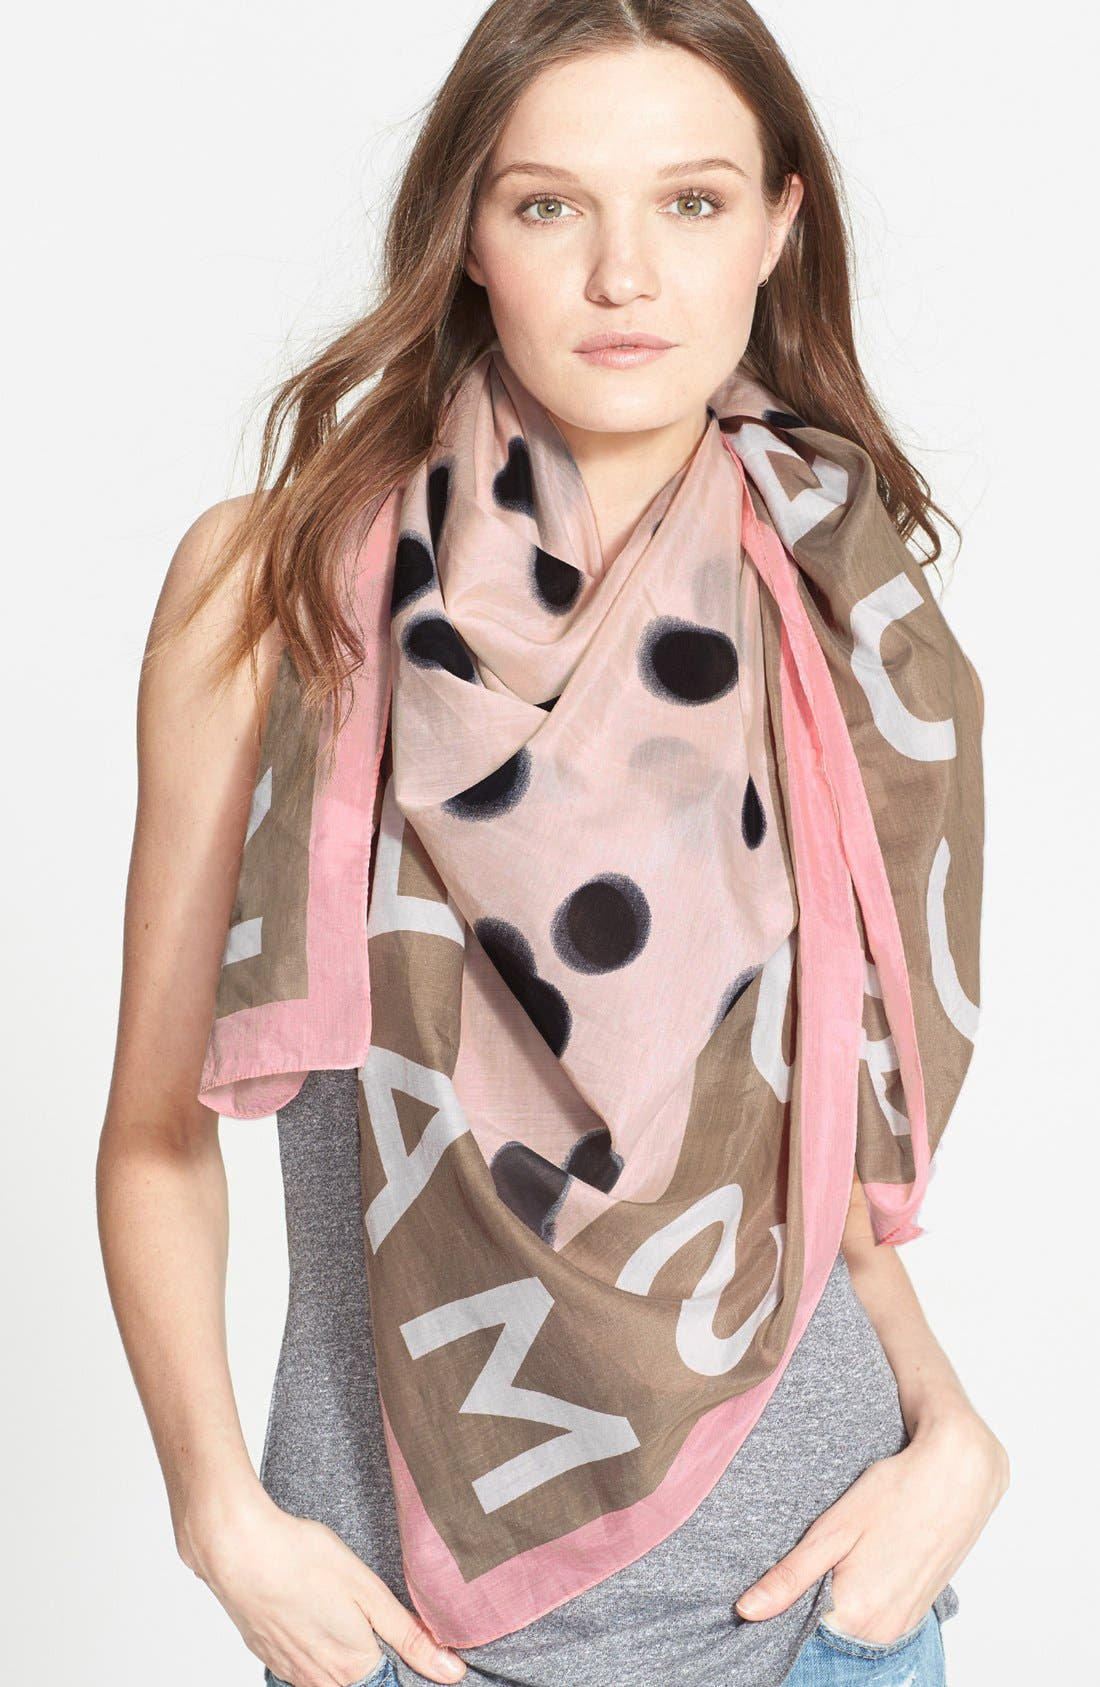 MARC BY MARC JACOBS 'Blurred Dot' Cotton & Silk Square Scarf,                             Main thumbnail 1, color,                             Piggy Pink Multi